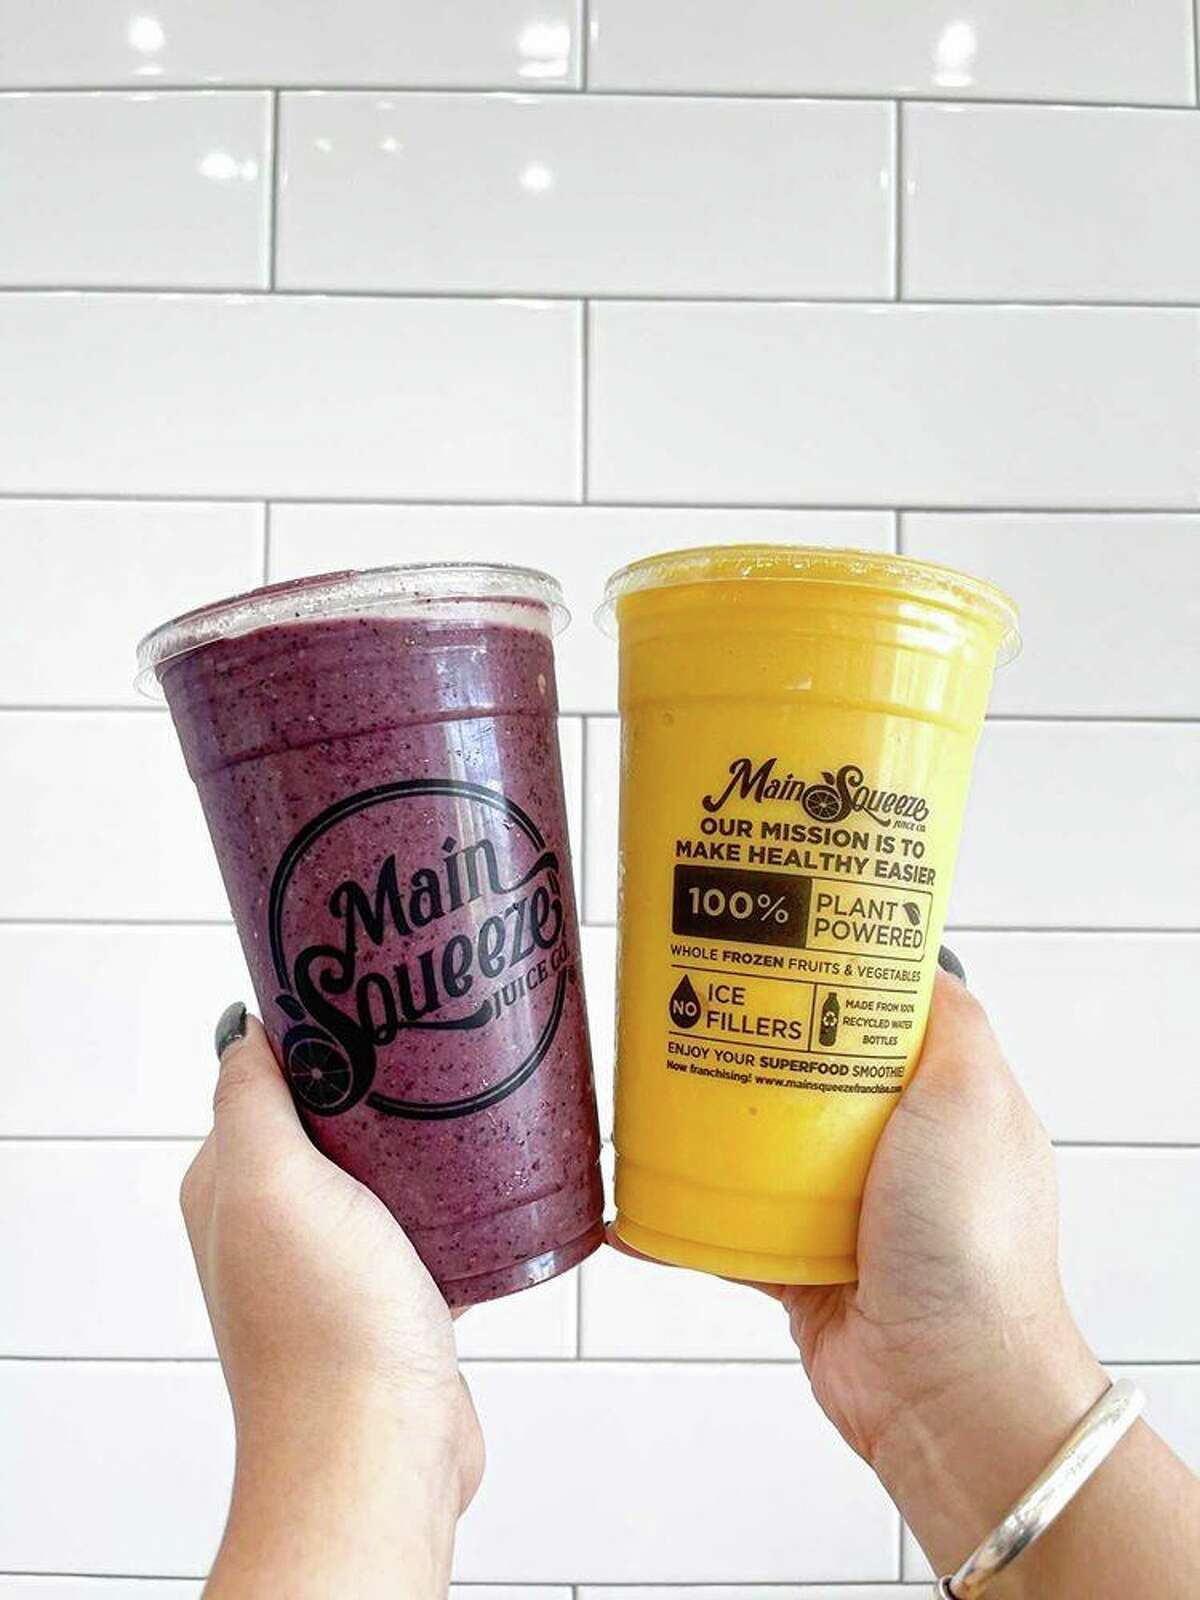 The Main Squeeze officially opened its Friendswood store on July 9 at 1501 W Parkwood Suite 103.